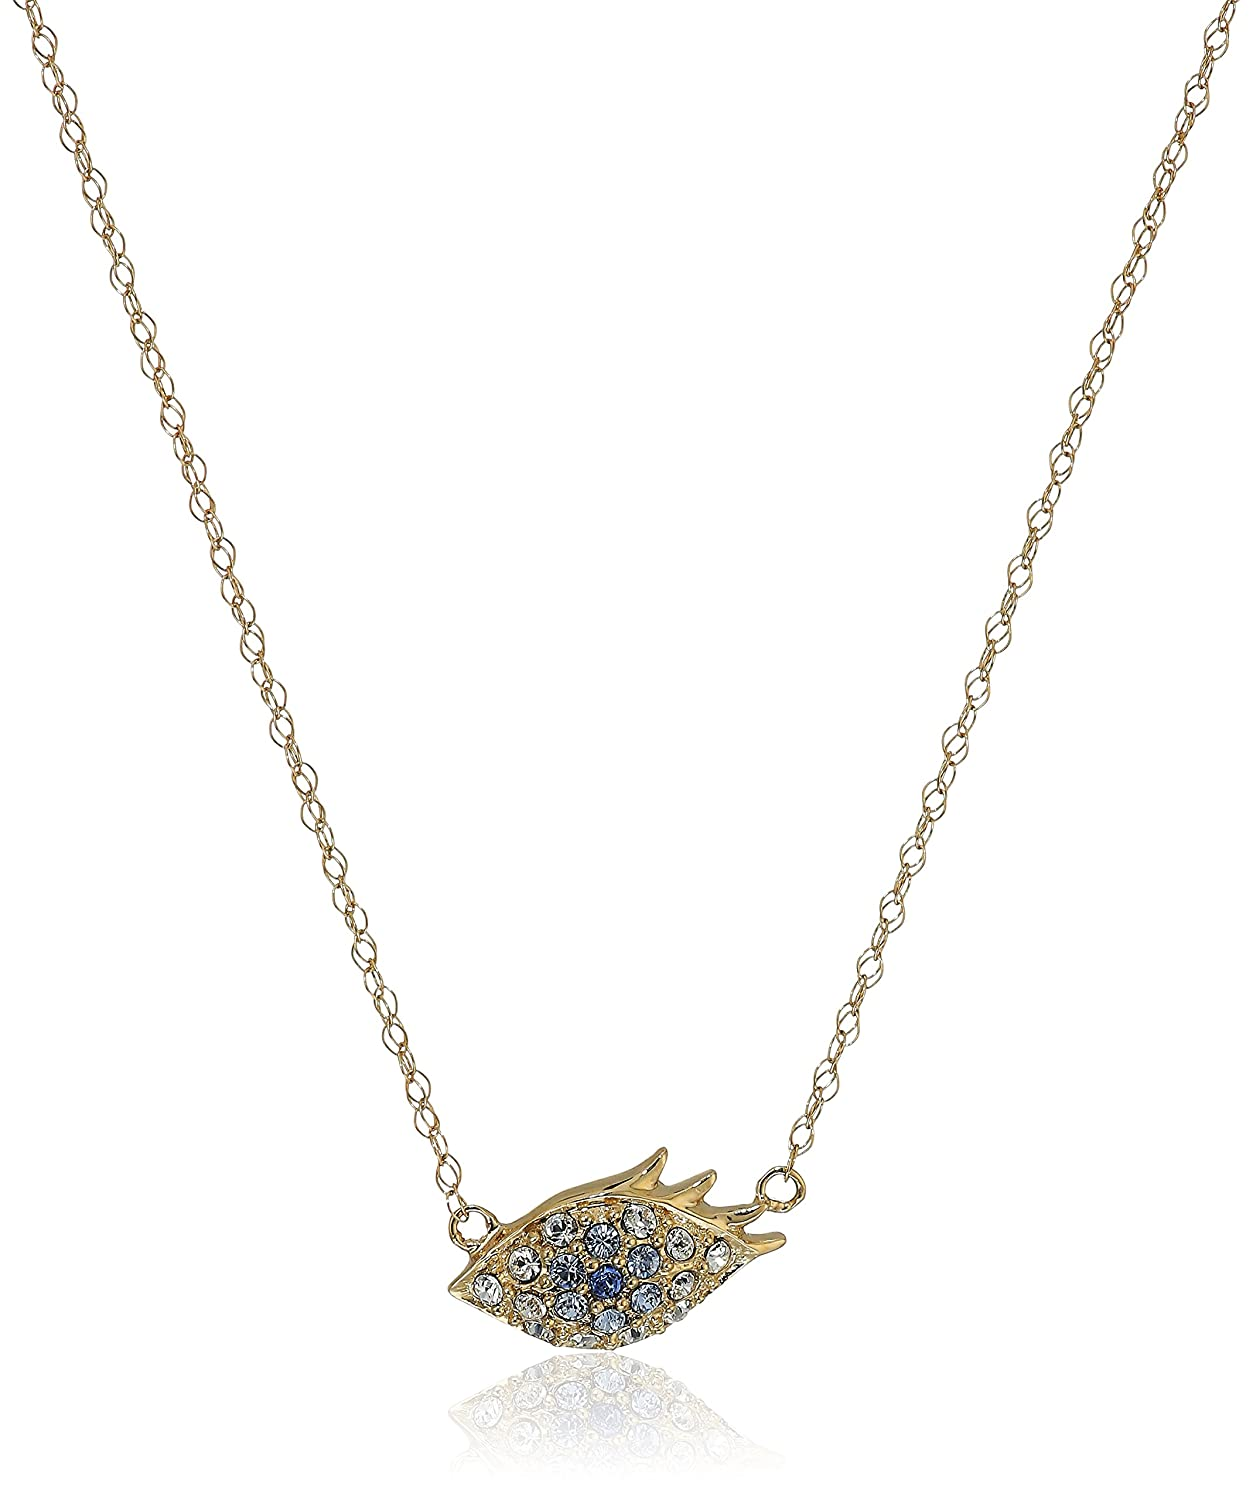 10k Yellow Gold Swarovski Crystal Evil Eye Necklace, 17""